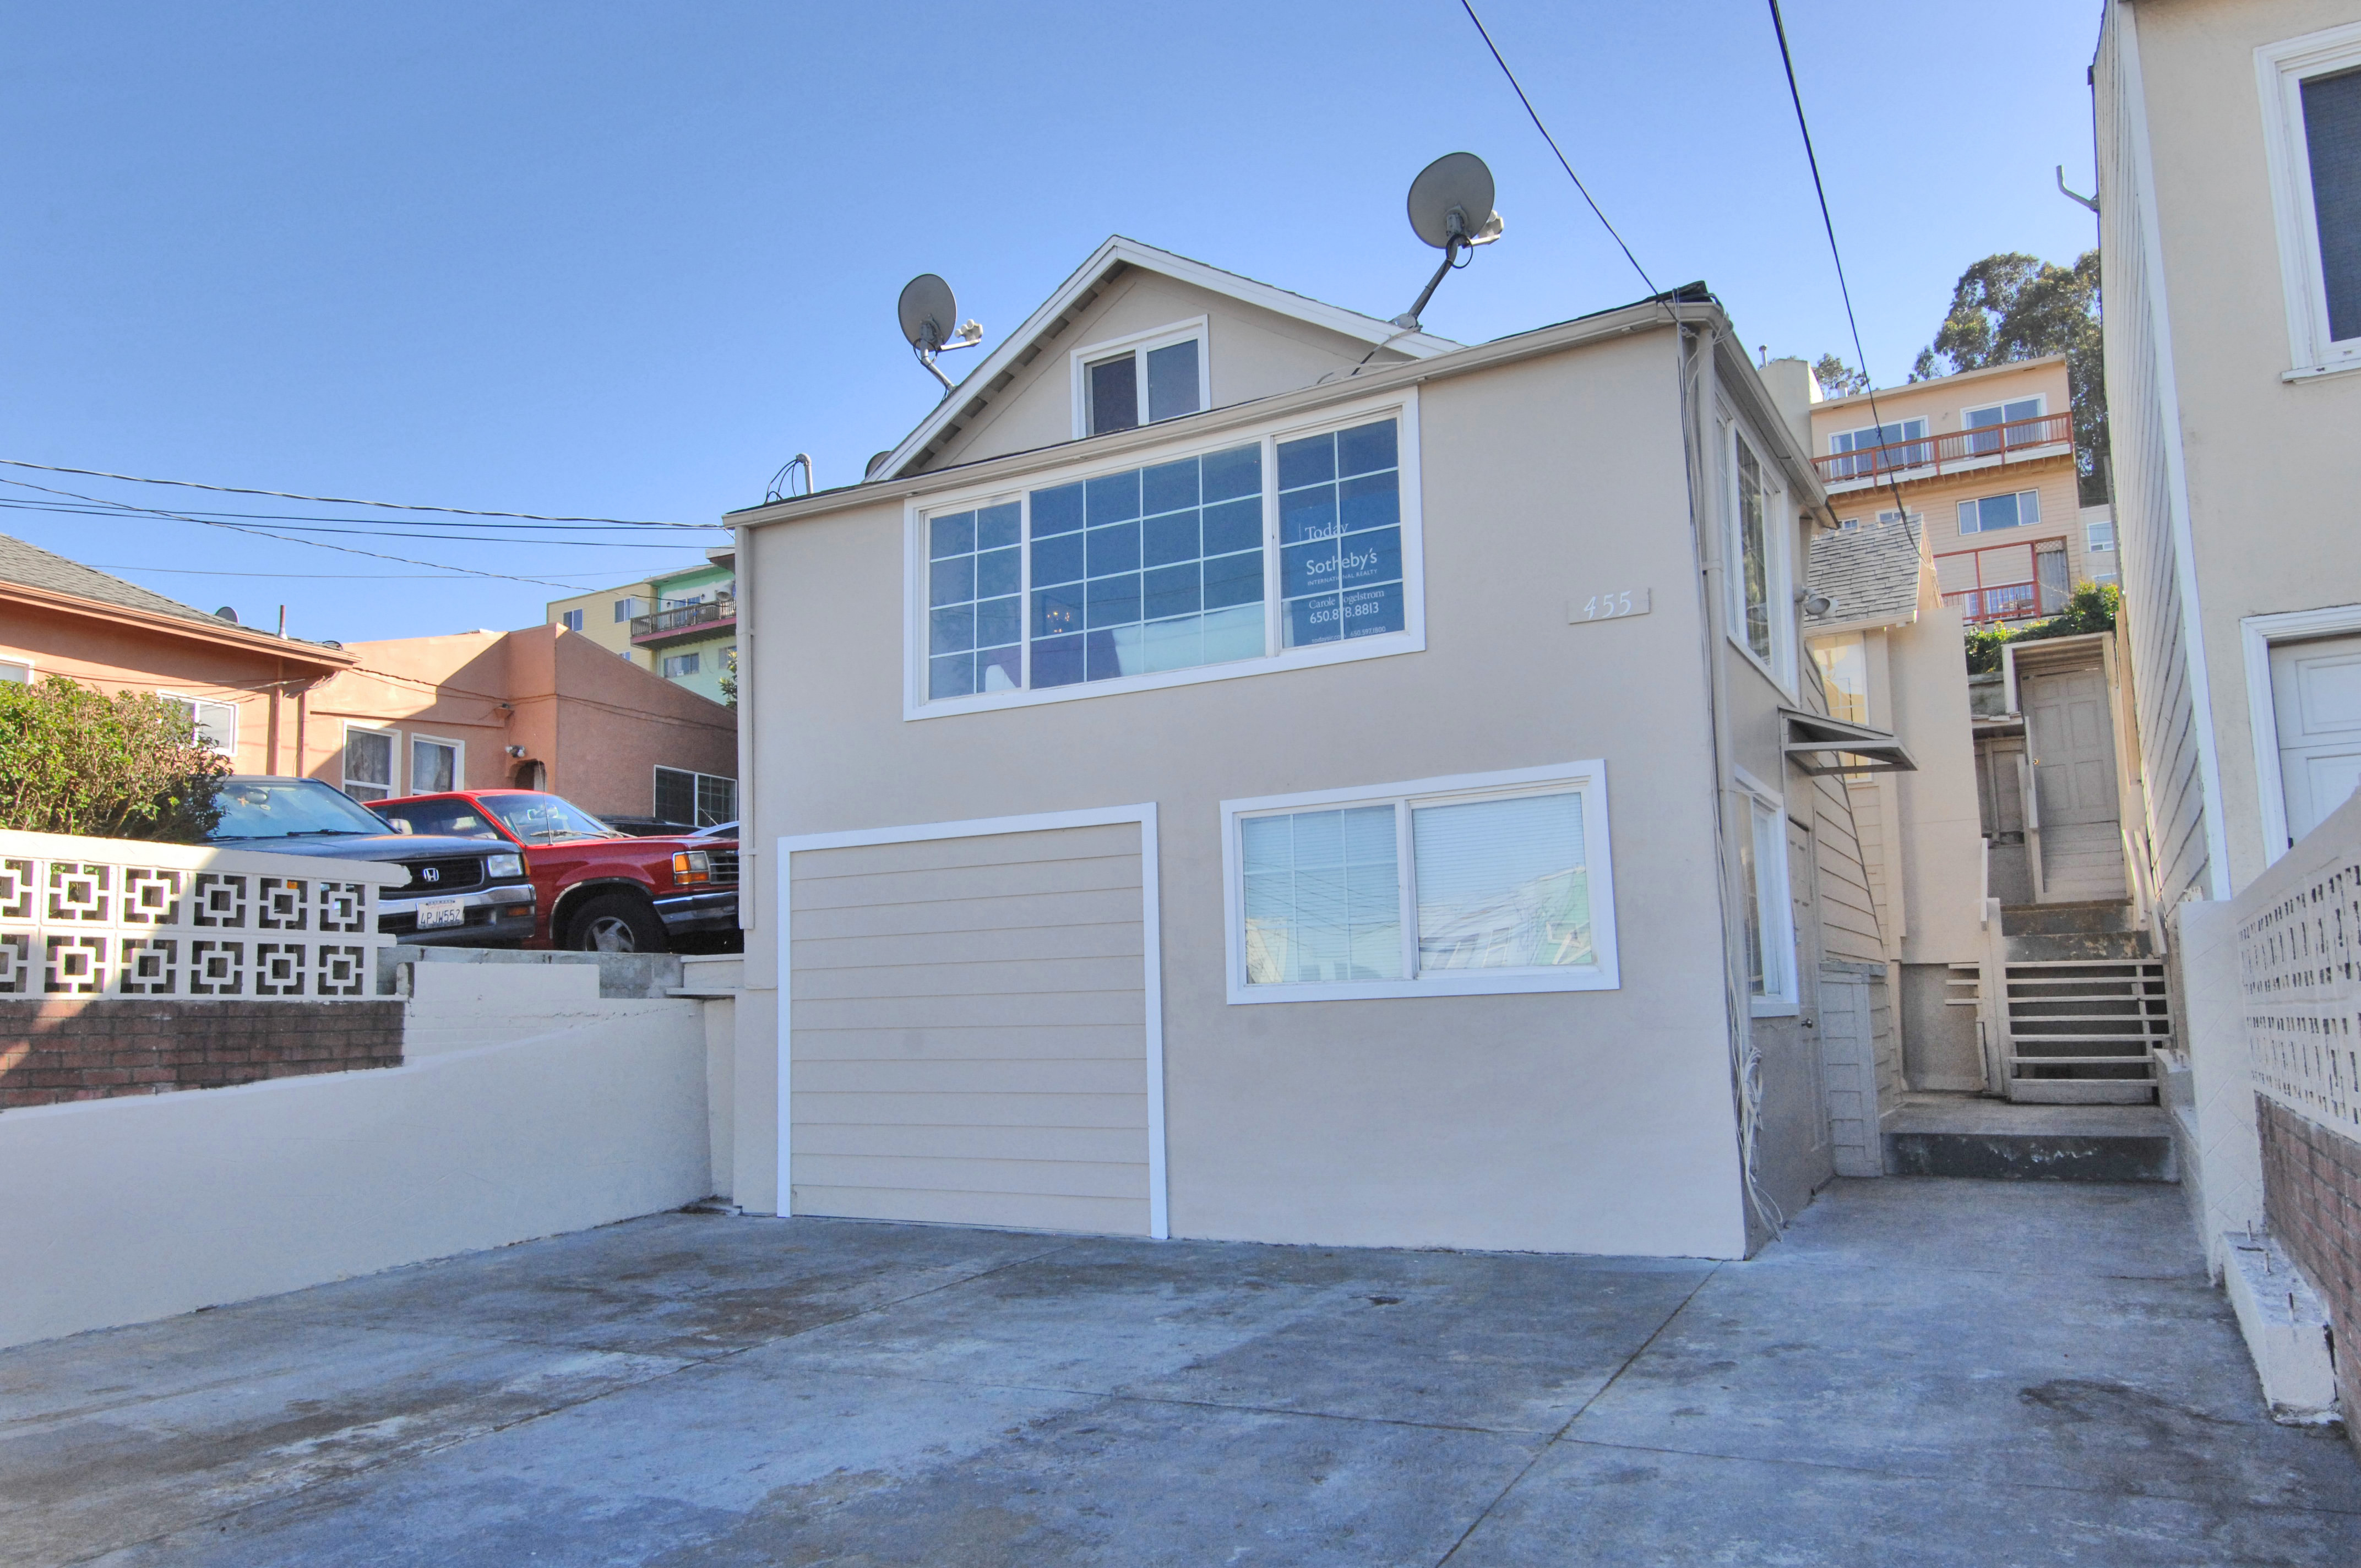 455 Bellevue Ave, Daly City, CA 94014